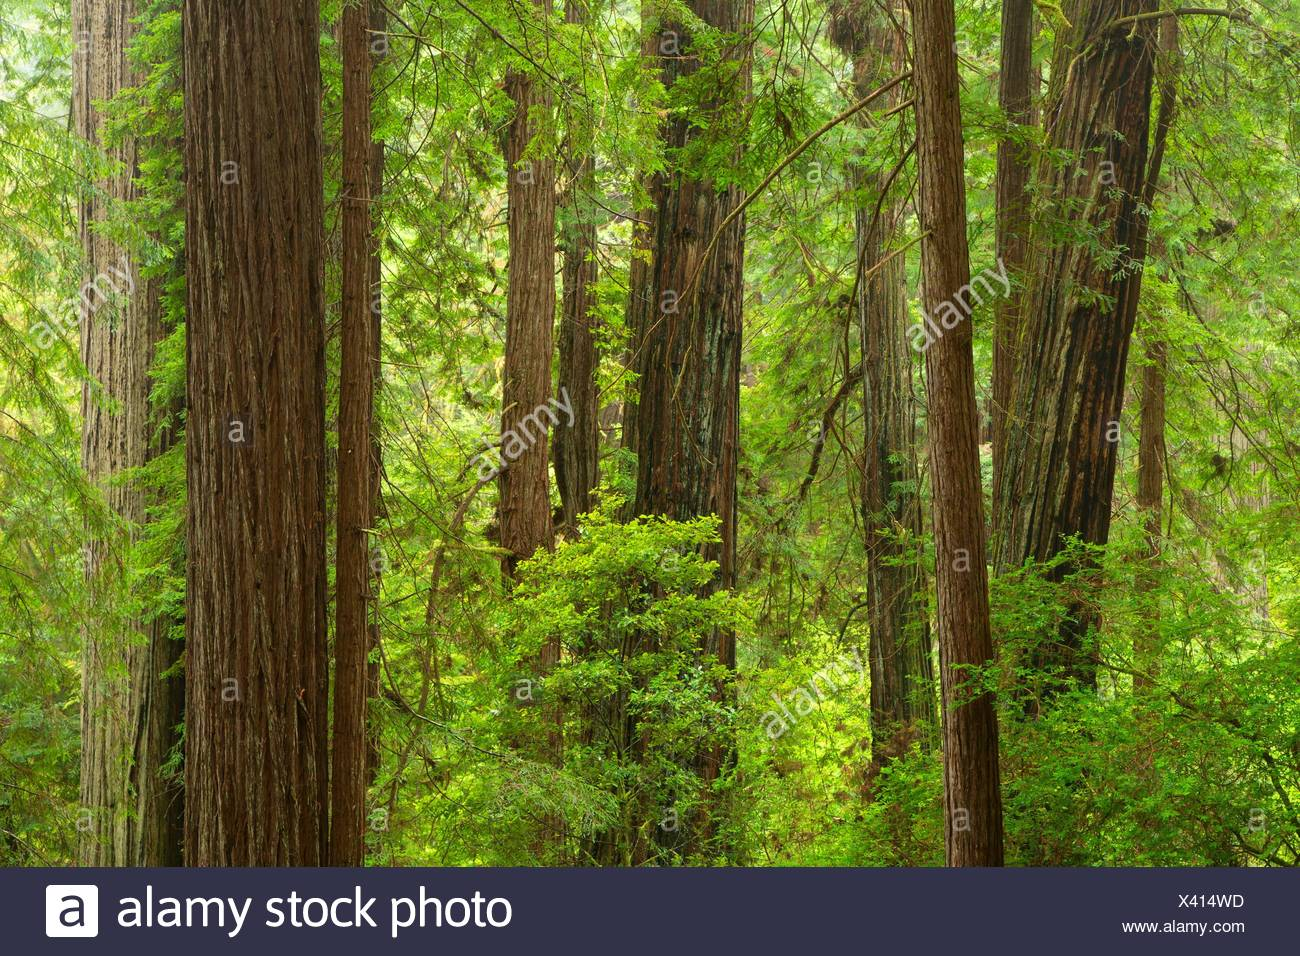 Coast redwood (Sequoia sempervirens) along Nature Trail, Prairie Creek Redwoods State Park, Redwood National Park, California. - Stock Image